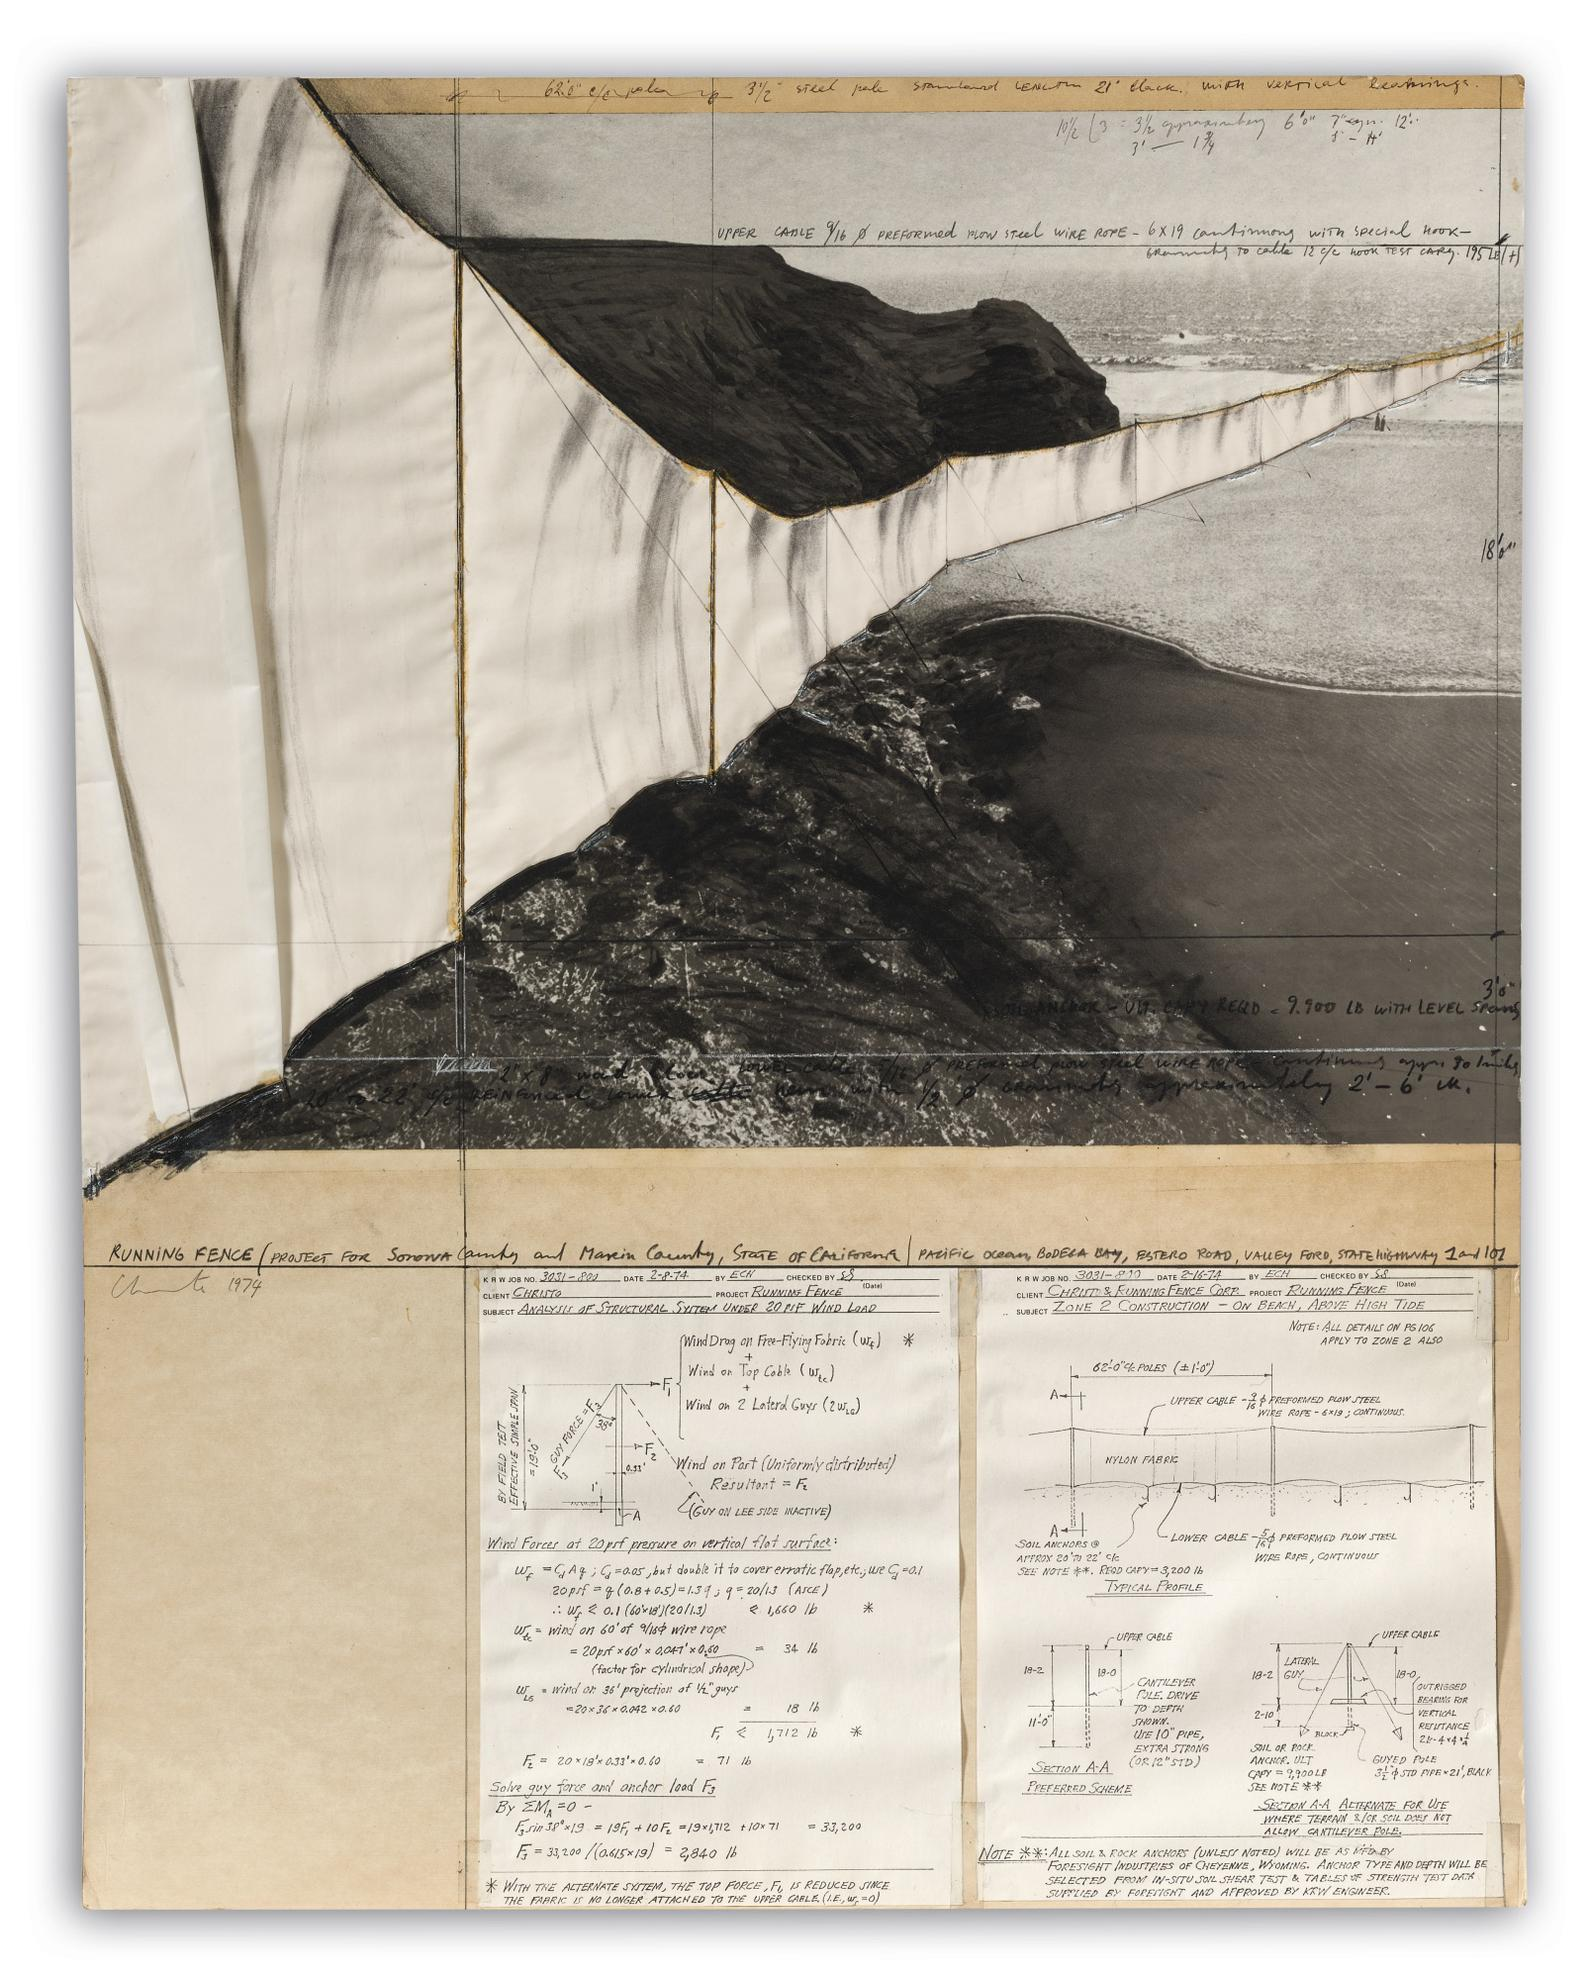 Christo and Jeanne-Claude-Running Fence (Project For Sorona County And Maxin County, State Of California/Pacific Ocean, Bodega Bay, Estero Road, Valley Ford, State Highway 1 And 101)-1974